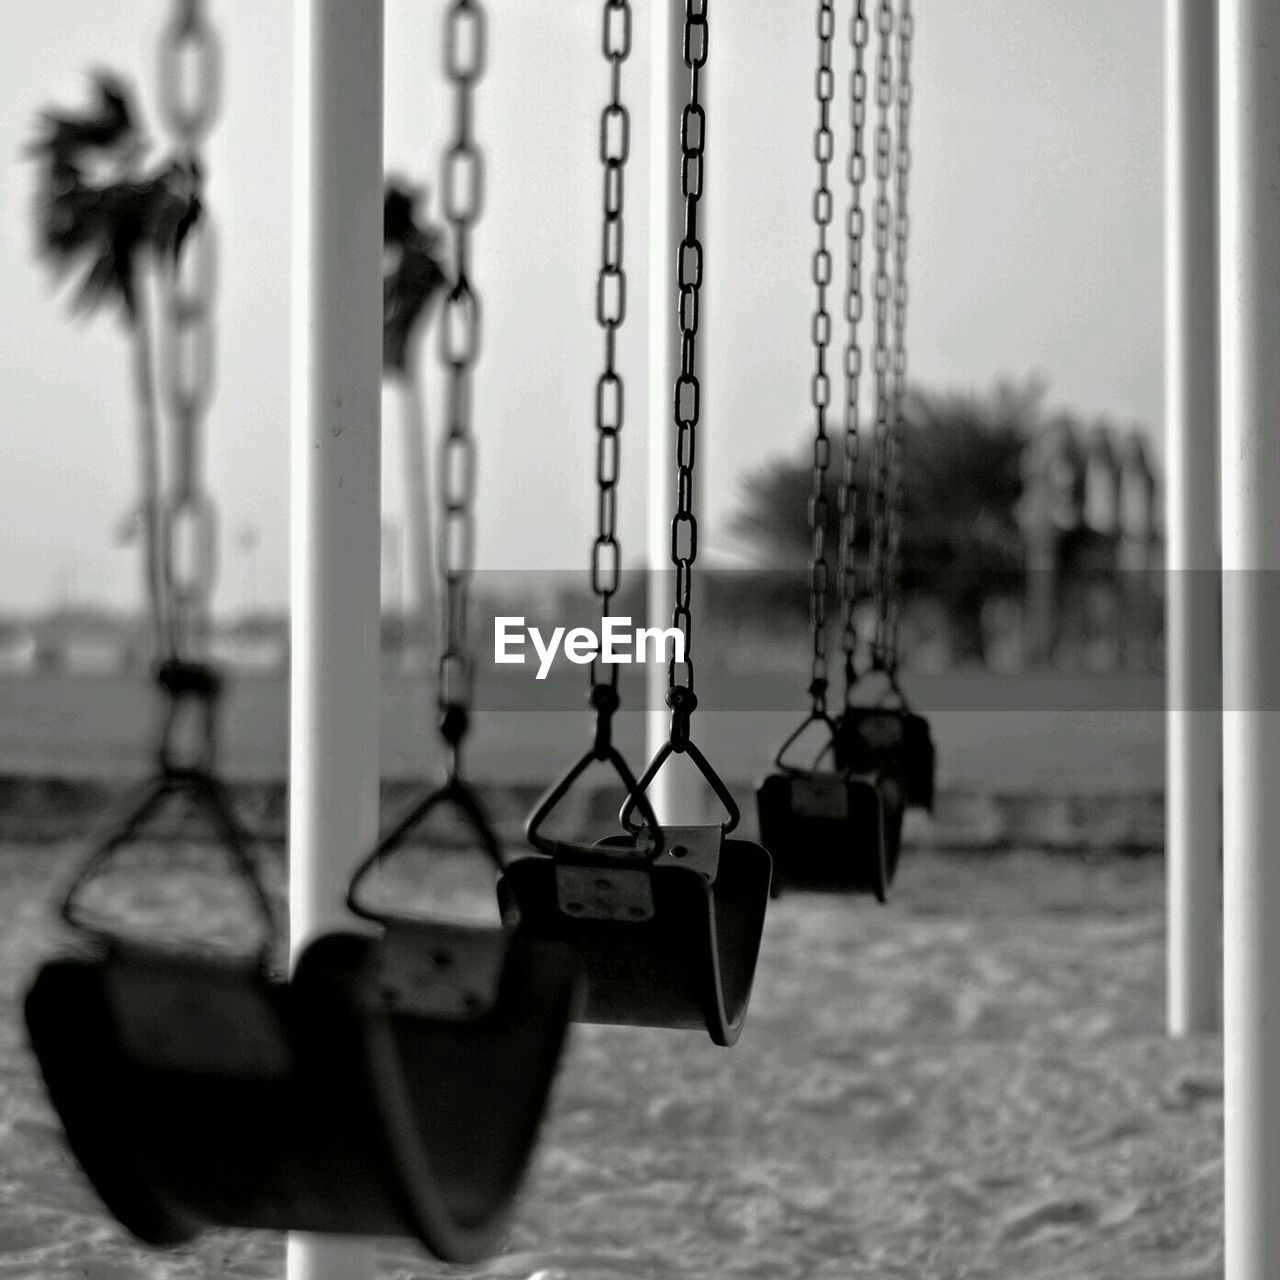 Swings hanging in playground